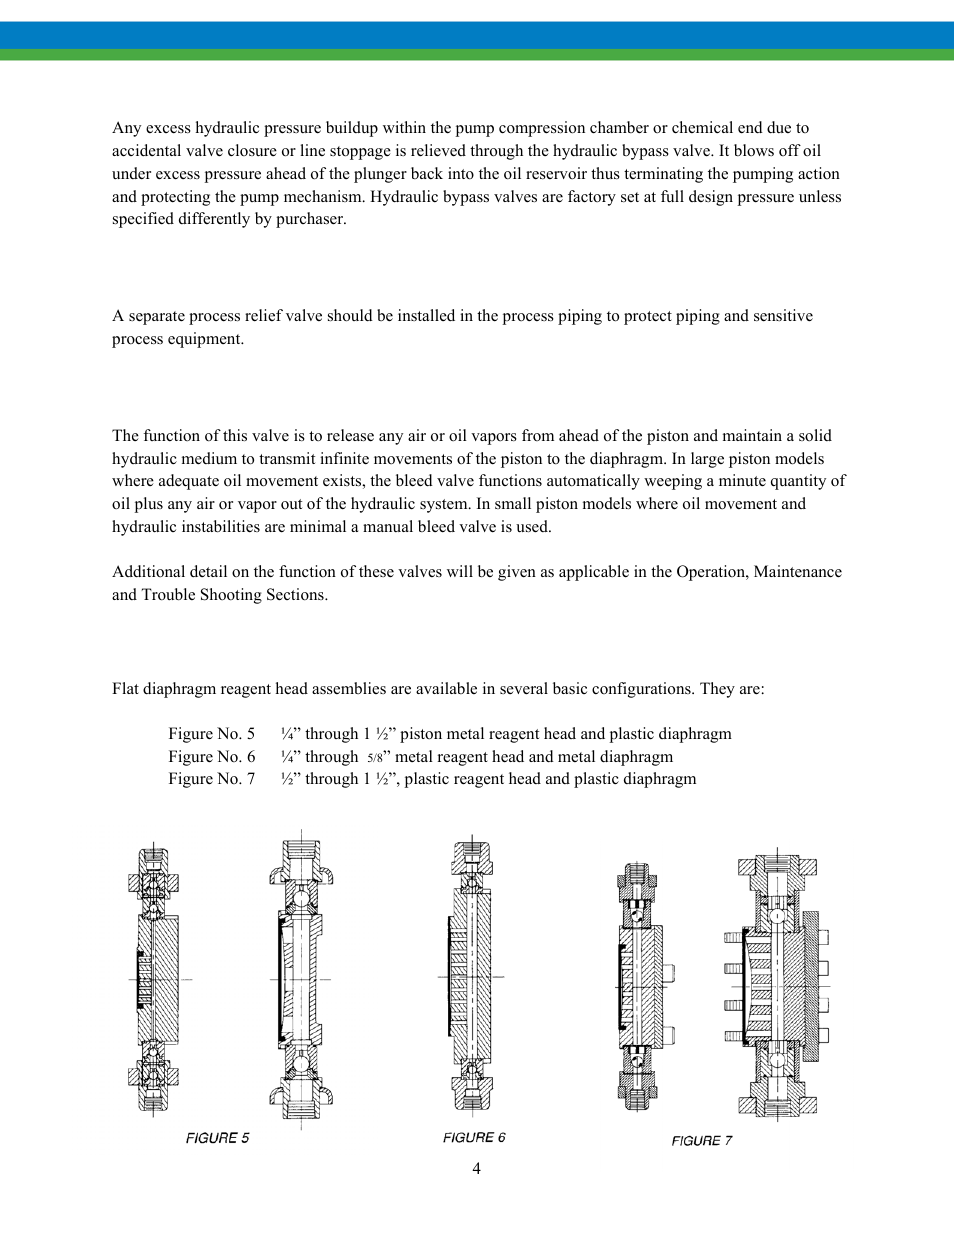 Vickers Hydraulic Pressure Relief Valves Manual Guide